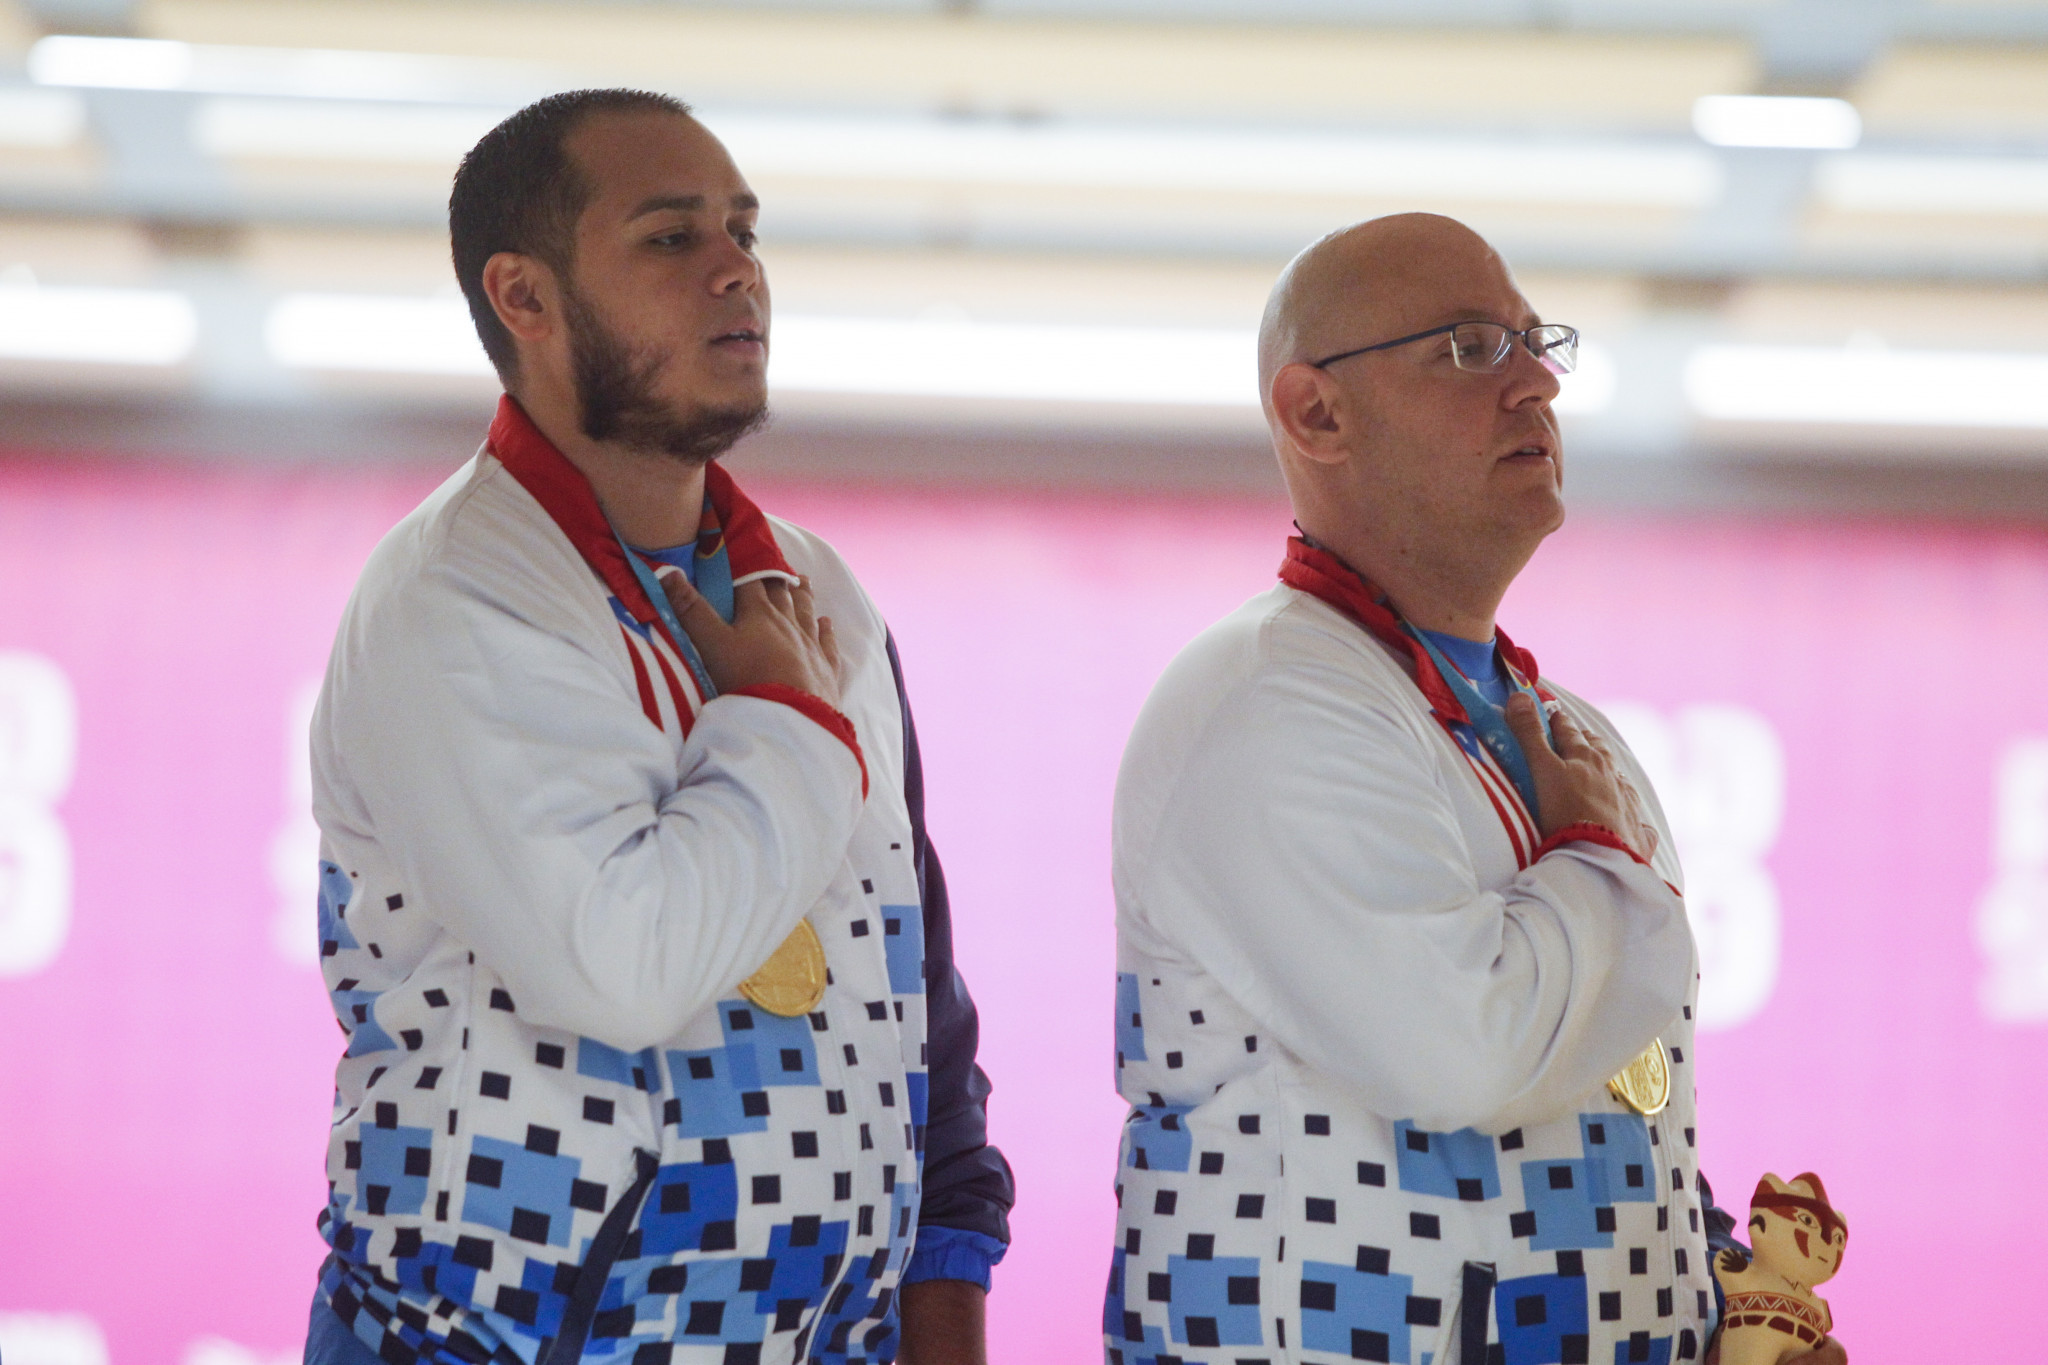 Jean Perez, right, failed a drug test at Lima 2019 ©Getty Images